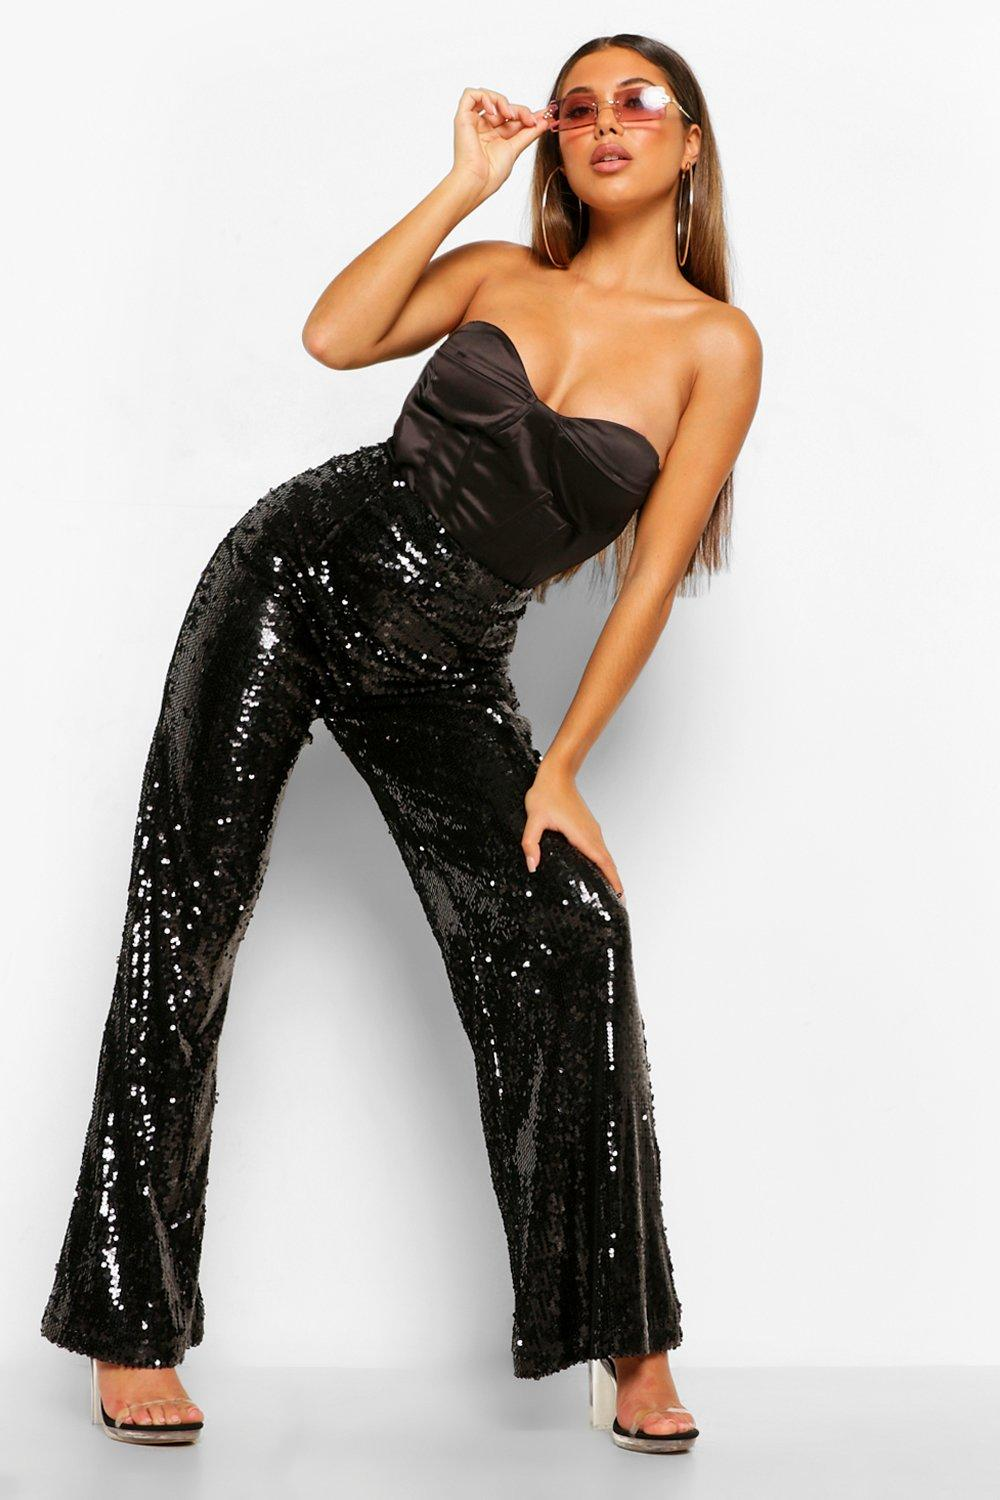 70s Outfits – 70s Style Ideas for Women Womens Shiny Sequin Wide Leg Pants - Black - 10 $45.00 AT vintagedancer.com